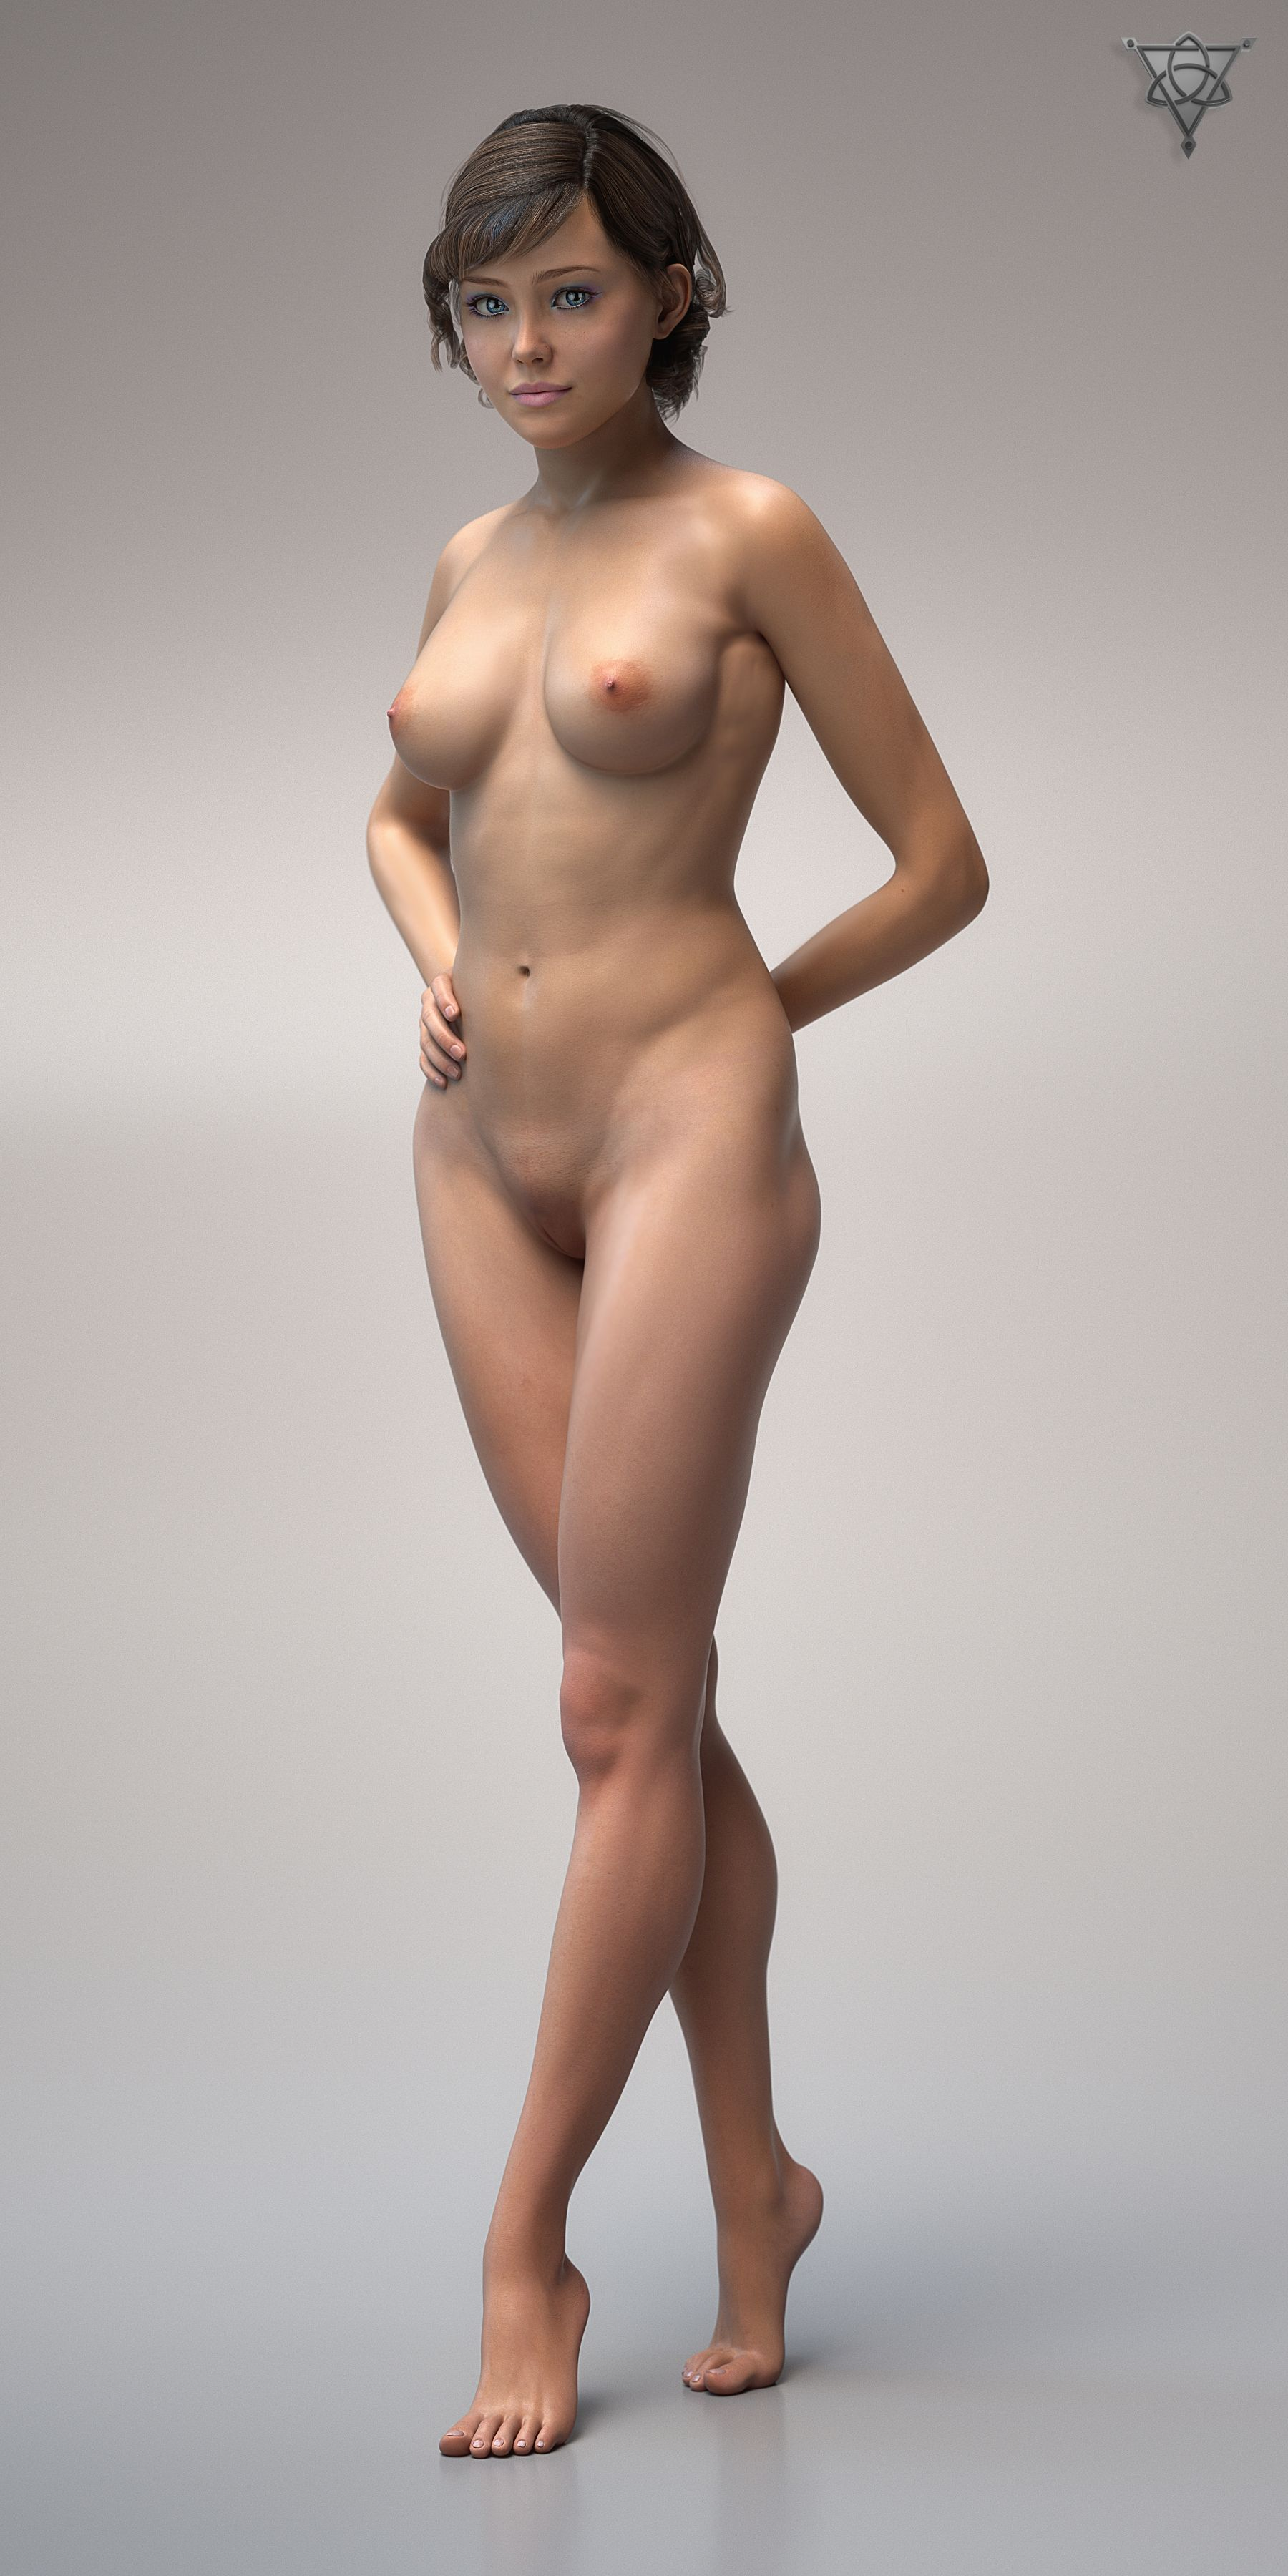 Nude Woman Full Front 3D Cg Model  3D Cgi Render  Art -6971